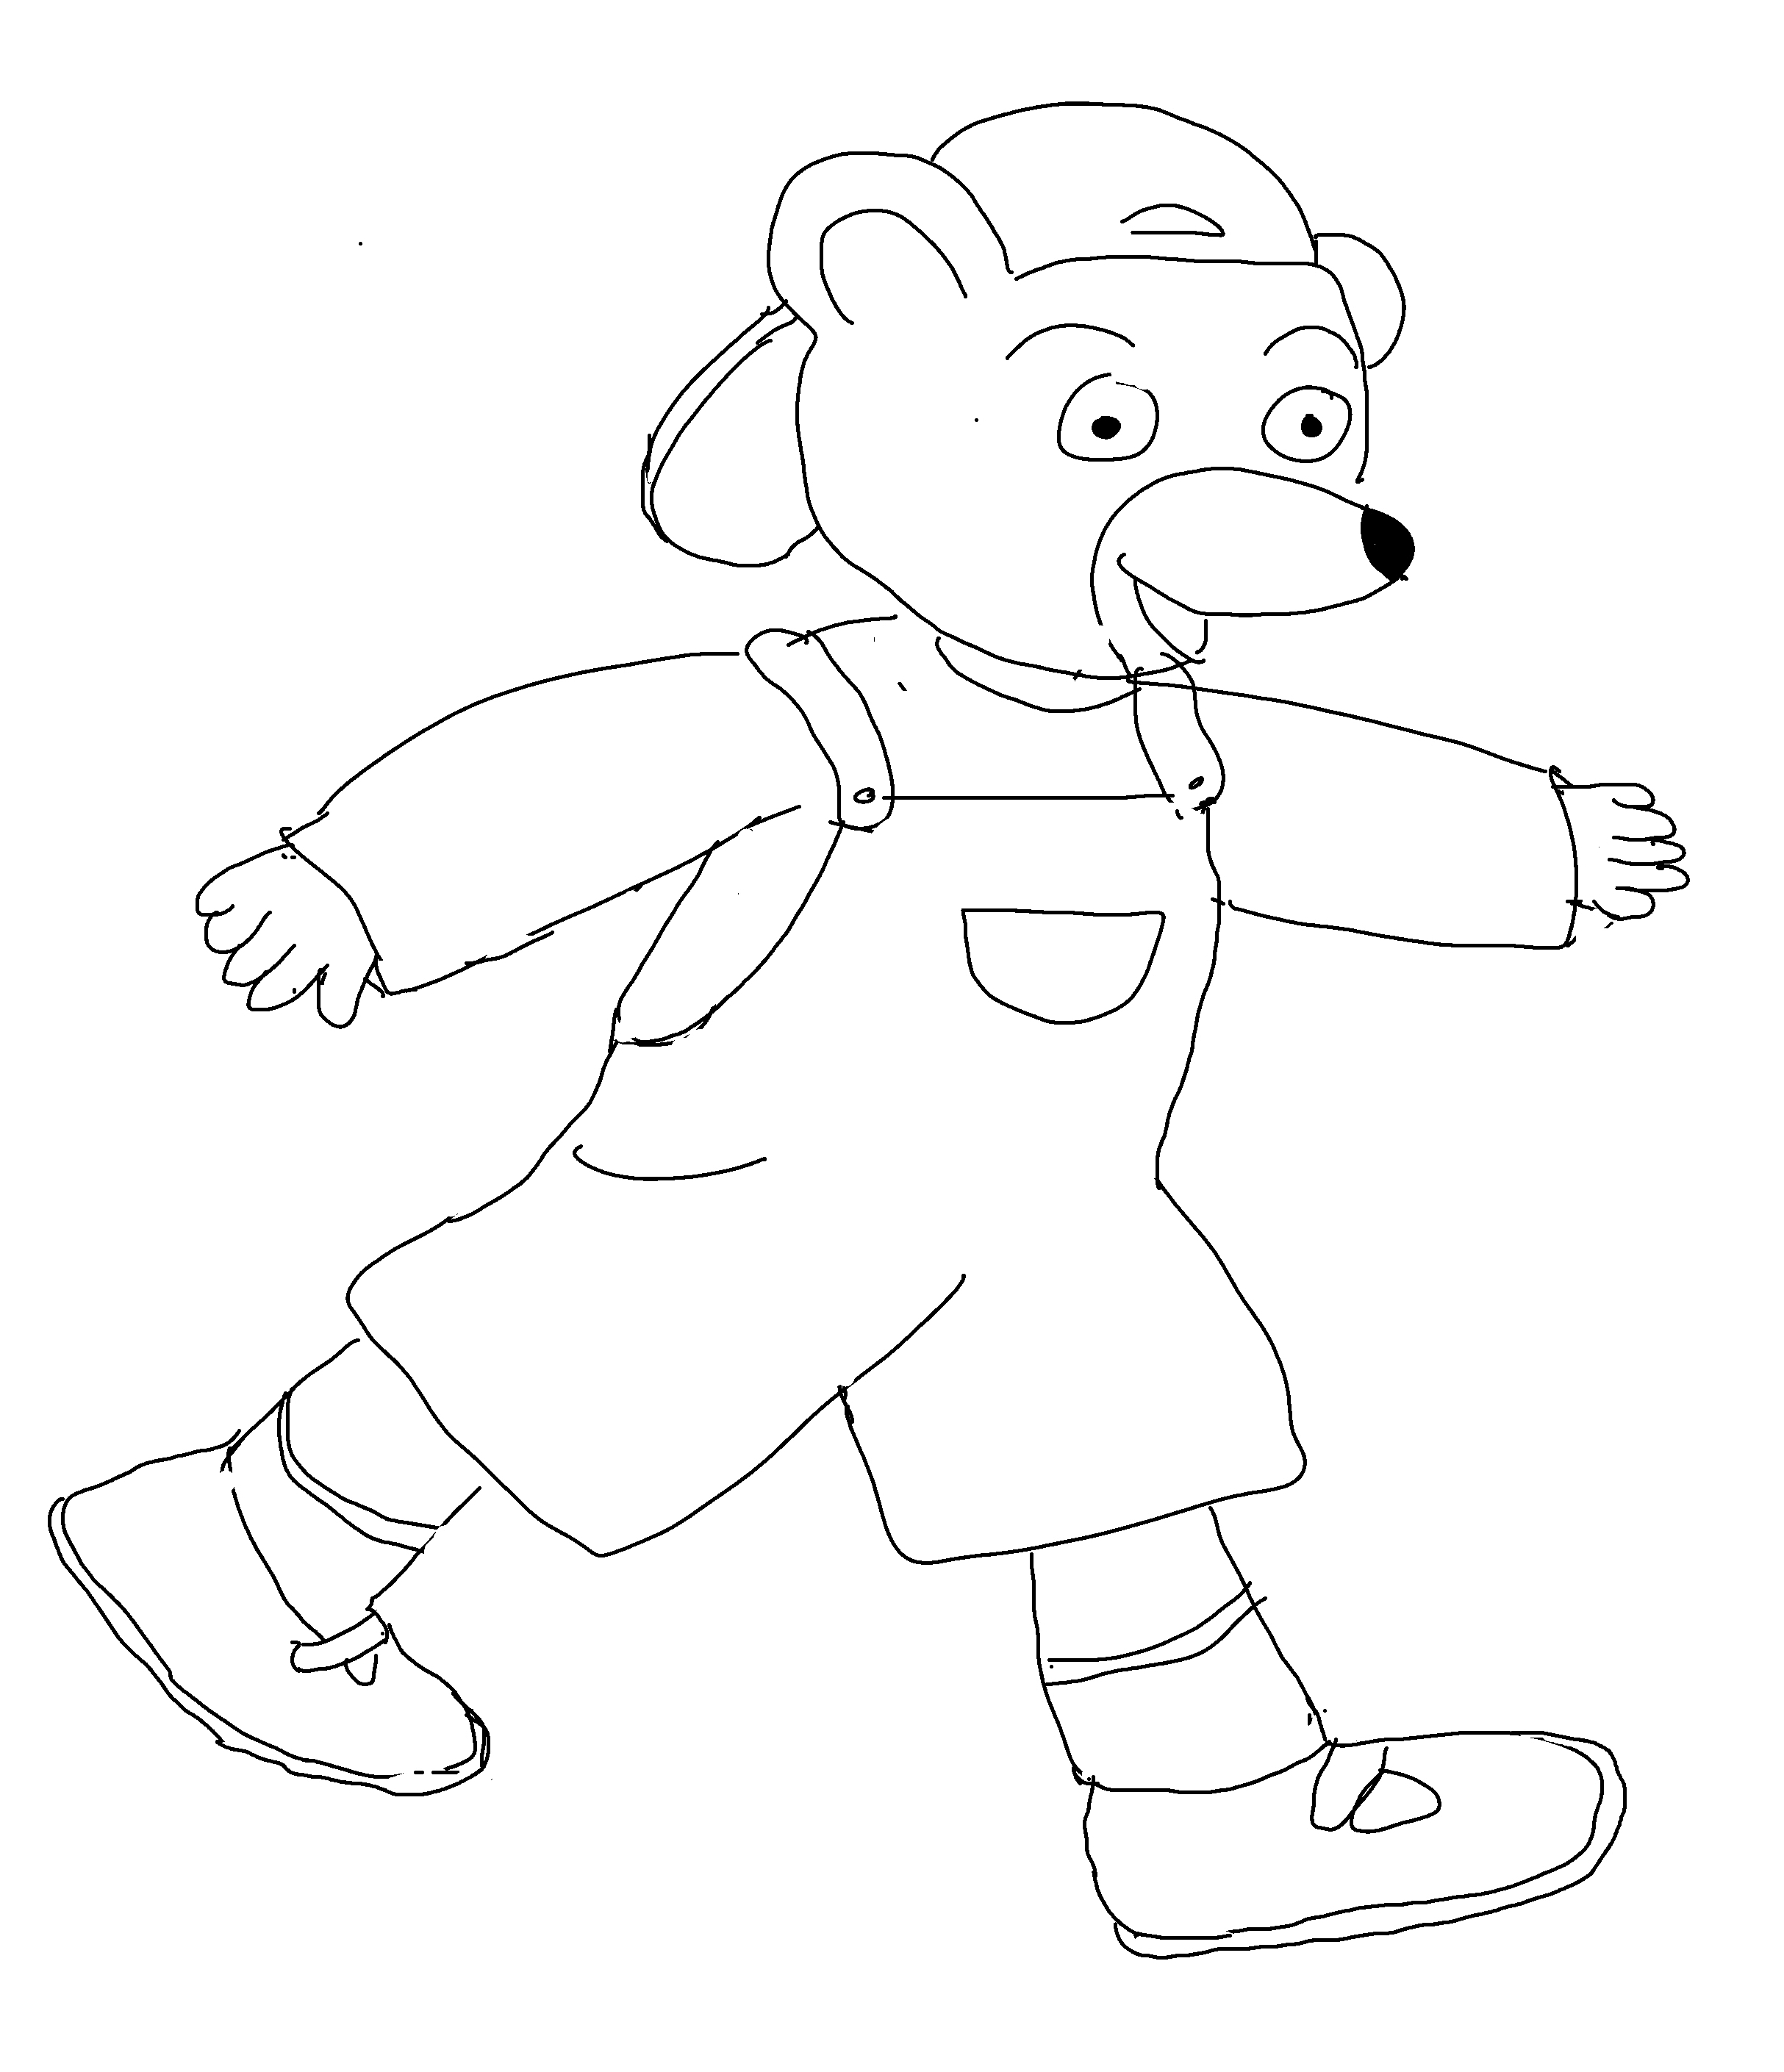 coloriage petit ours brun - Page 4